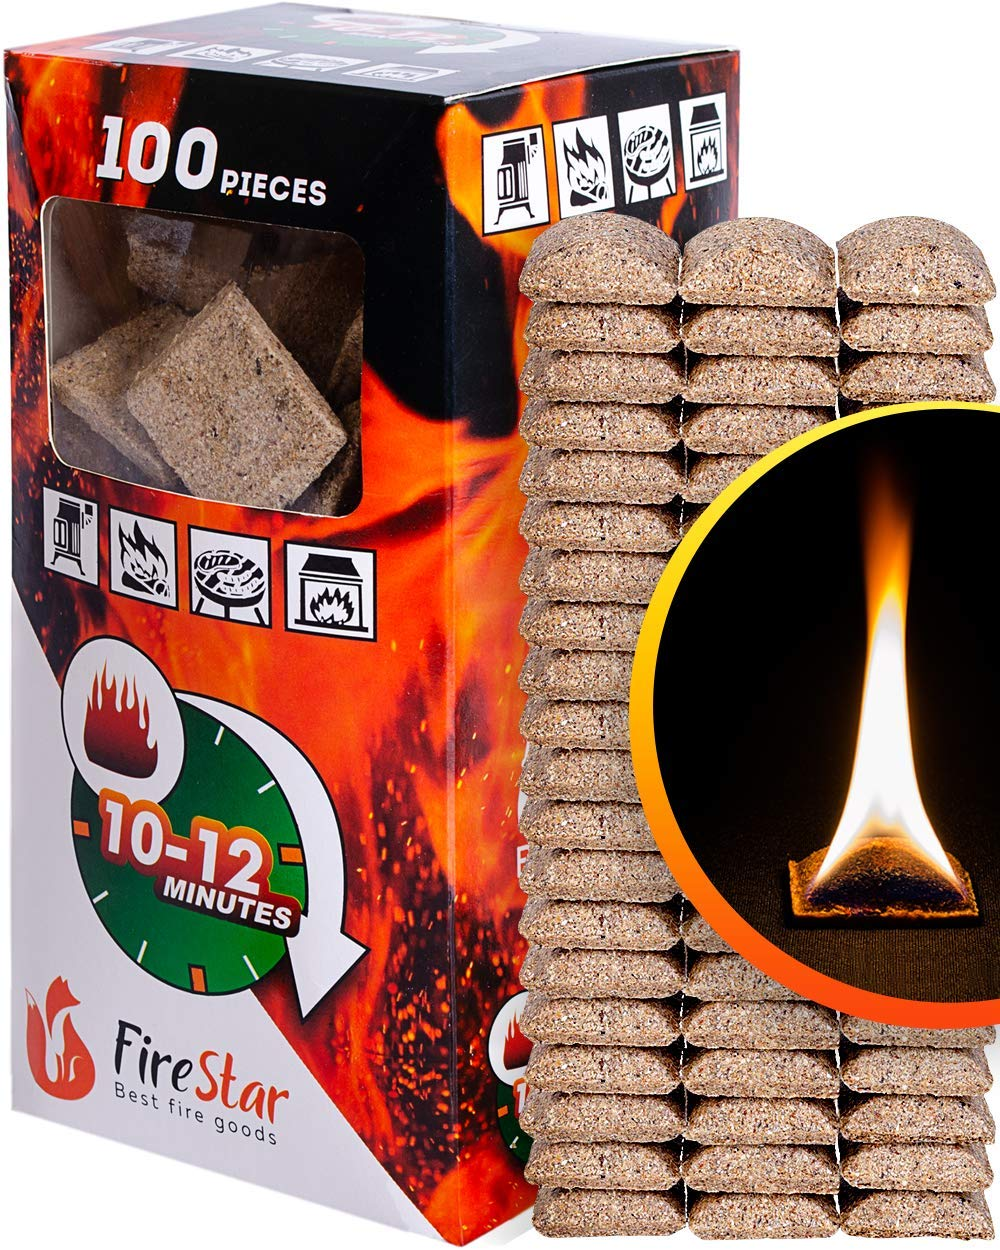 Fire Starter Squares - 100pc fire starters for fireplace - Camping fire lighter - Grill charcoal starter cubes - Firestarters for campfires | fireplace | fire pit burns 10-12 min by FireStar